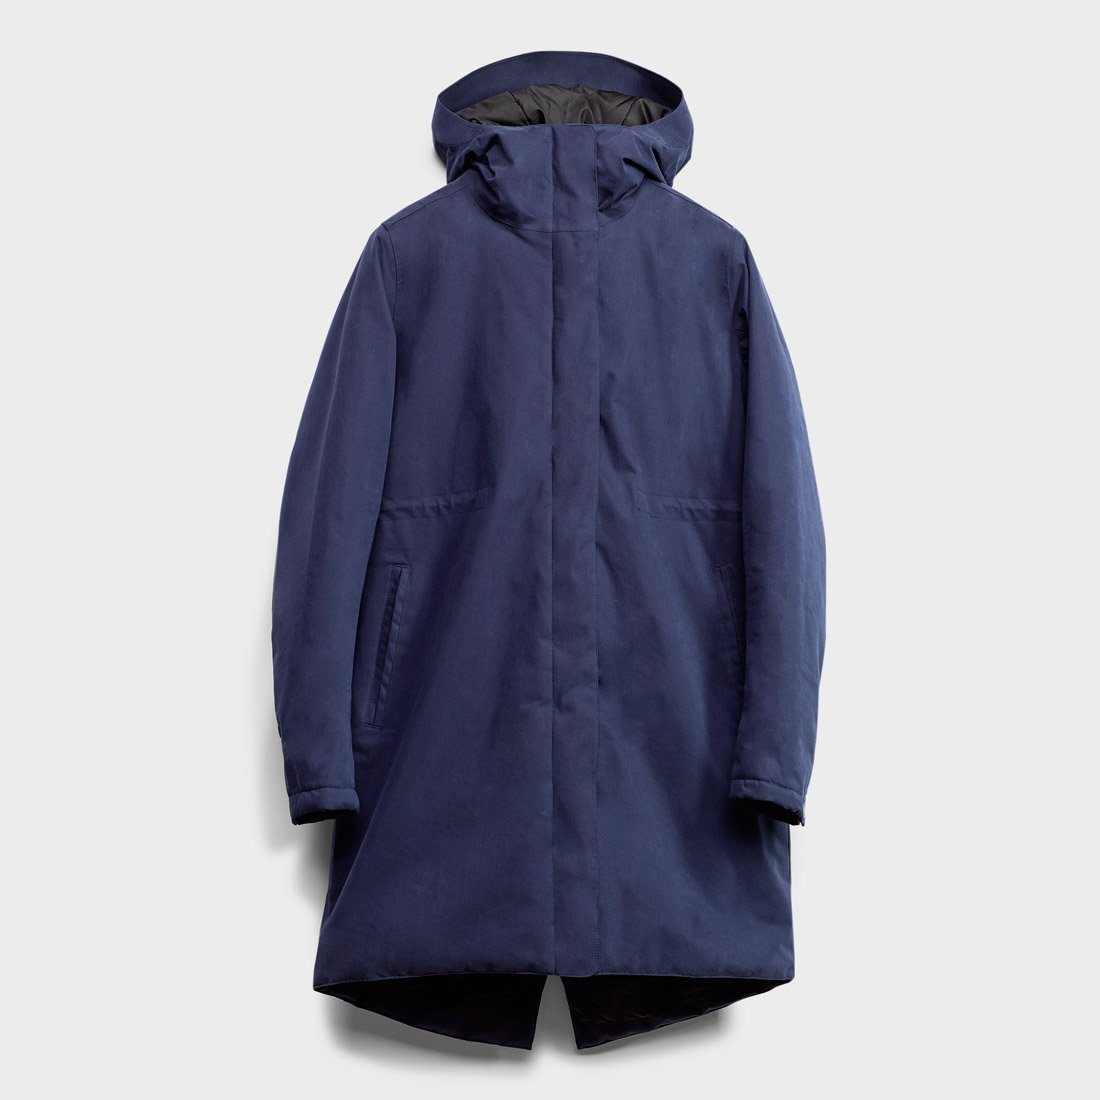 Baro Women's Northlands Insulated Jacket Navy